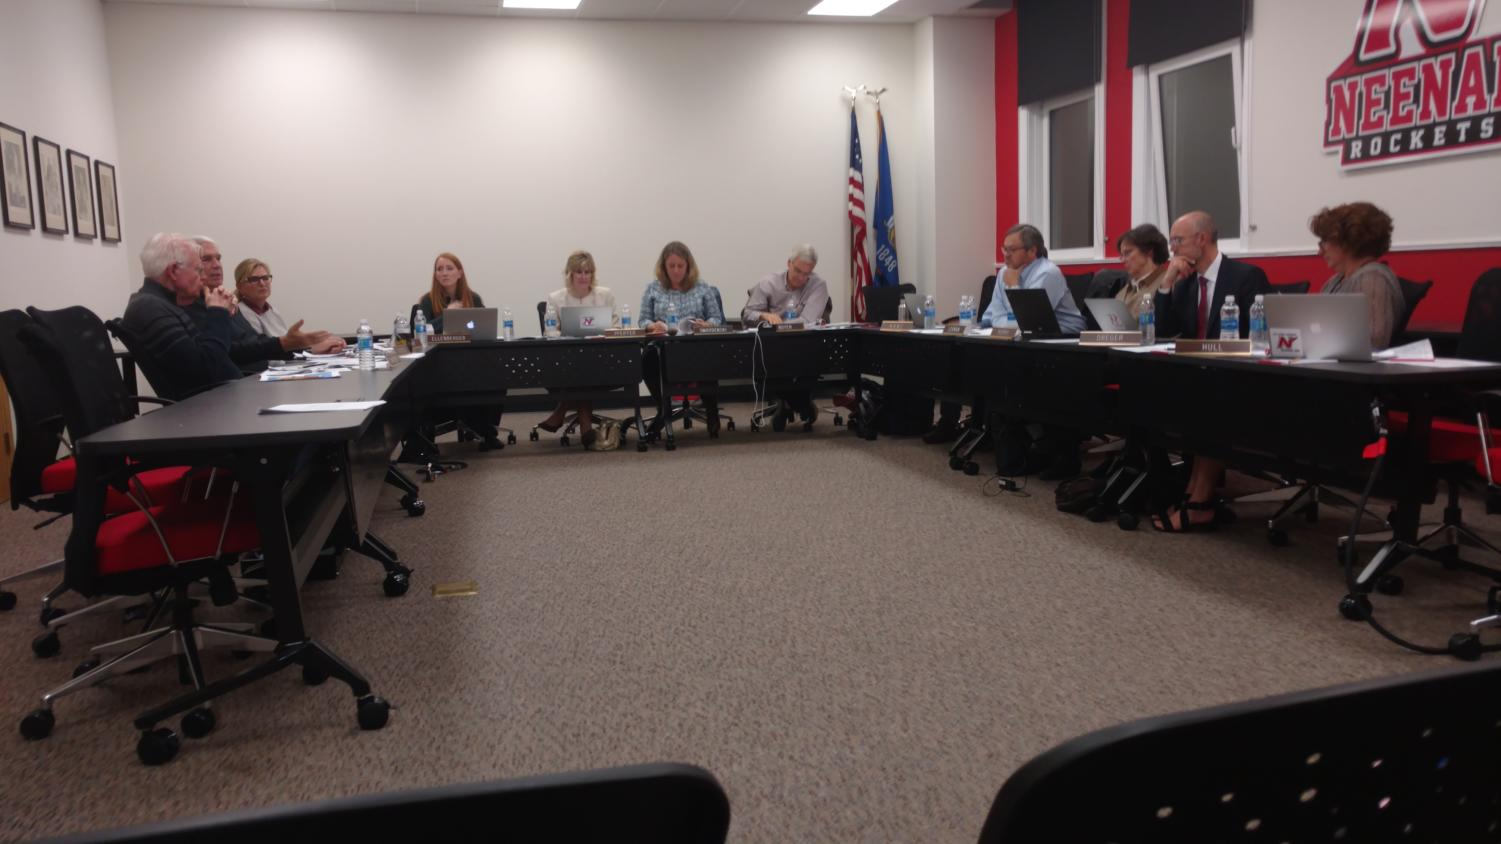 At a special meeting of the N.J.S.D. Board of Education on Thursday, Nov. 2, the board members discussed and voted upon proposed updates to the district's Human Growth and Development curriculum.